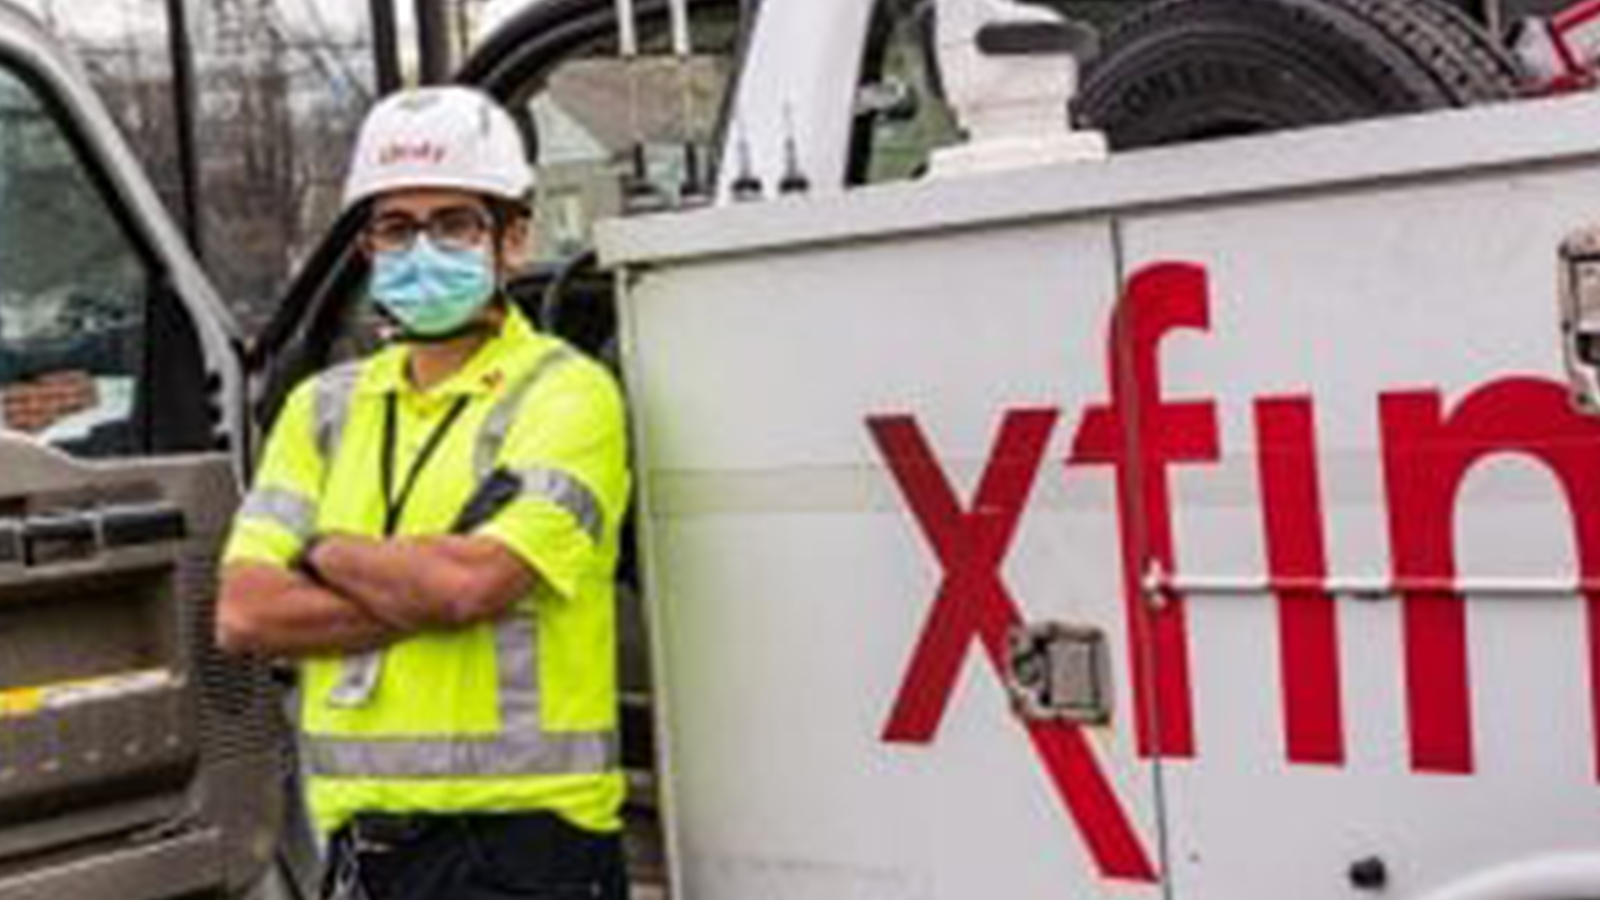 An employee standing in front of an Xfinity truck.